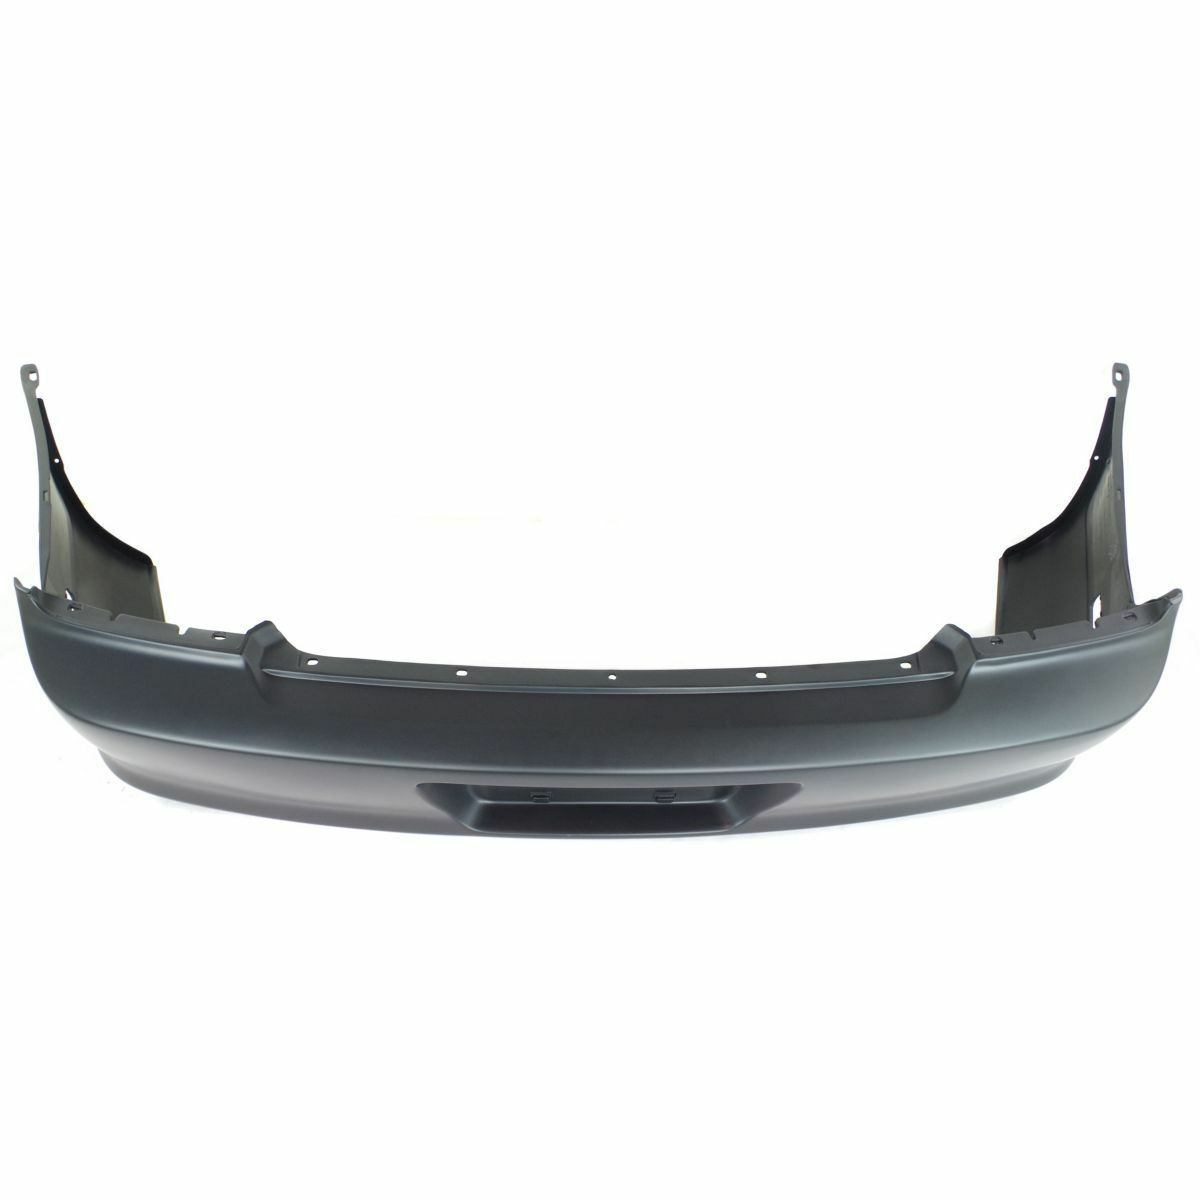 1998-2000 Honda Accord Coupe Rear Bumper Painted to Match